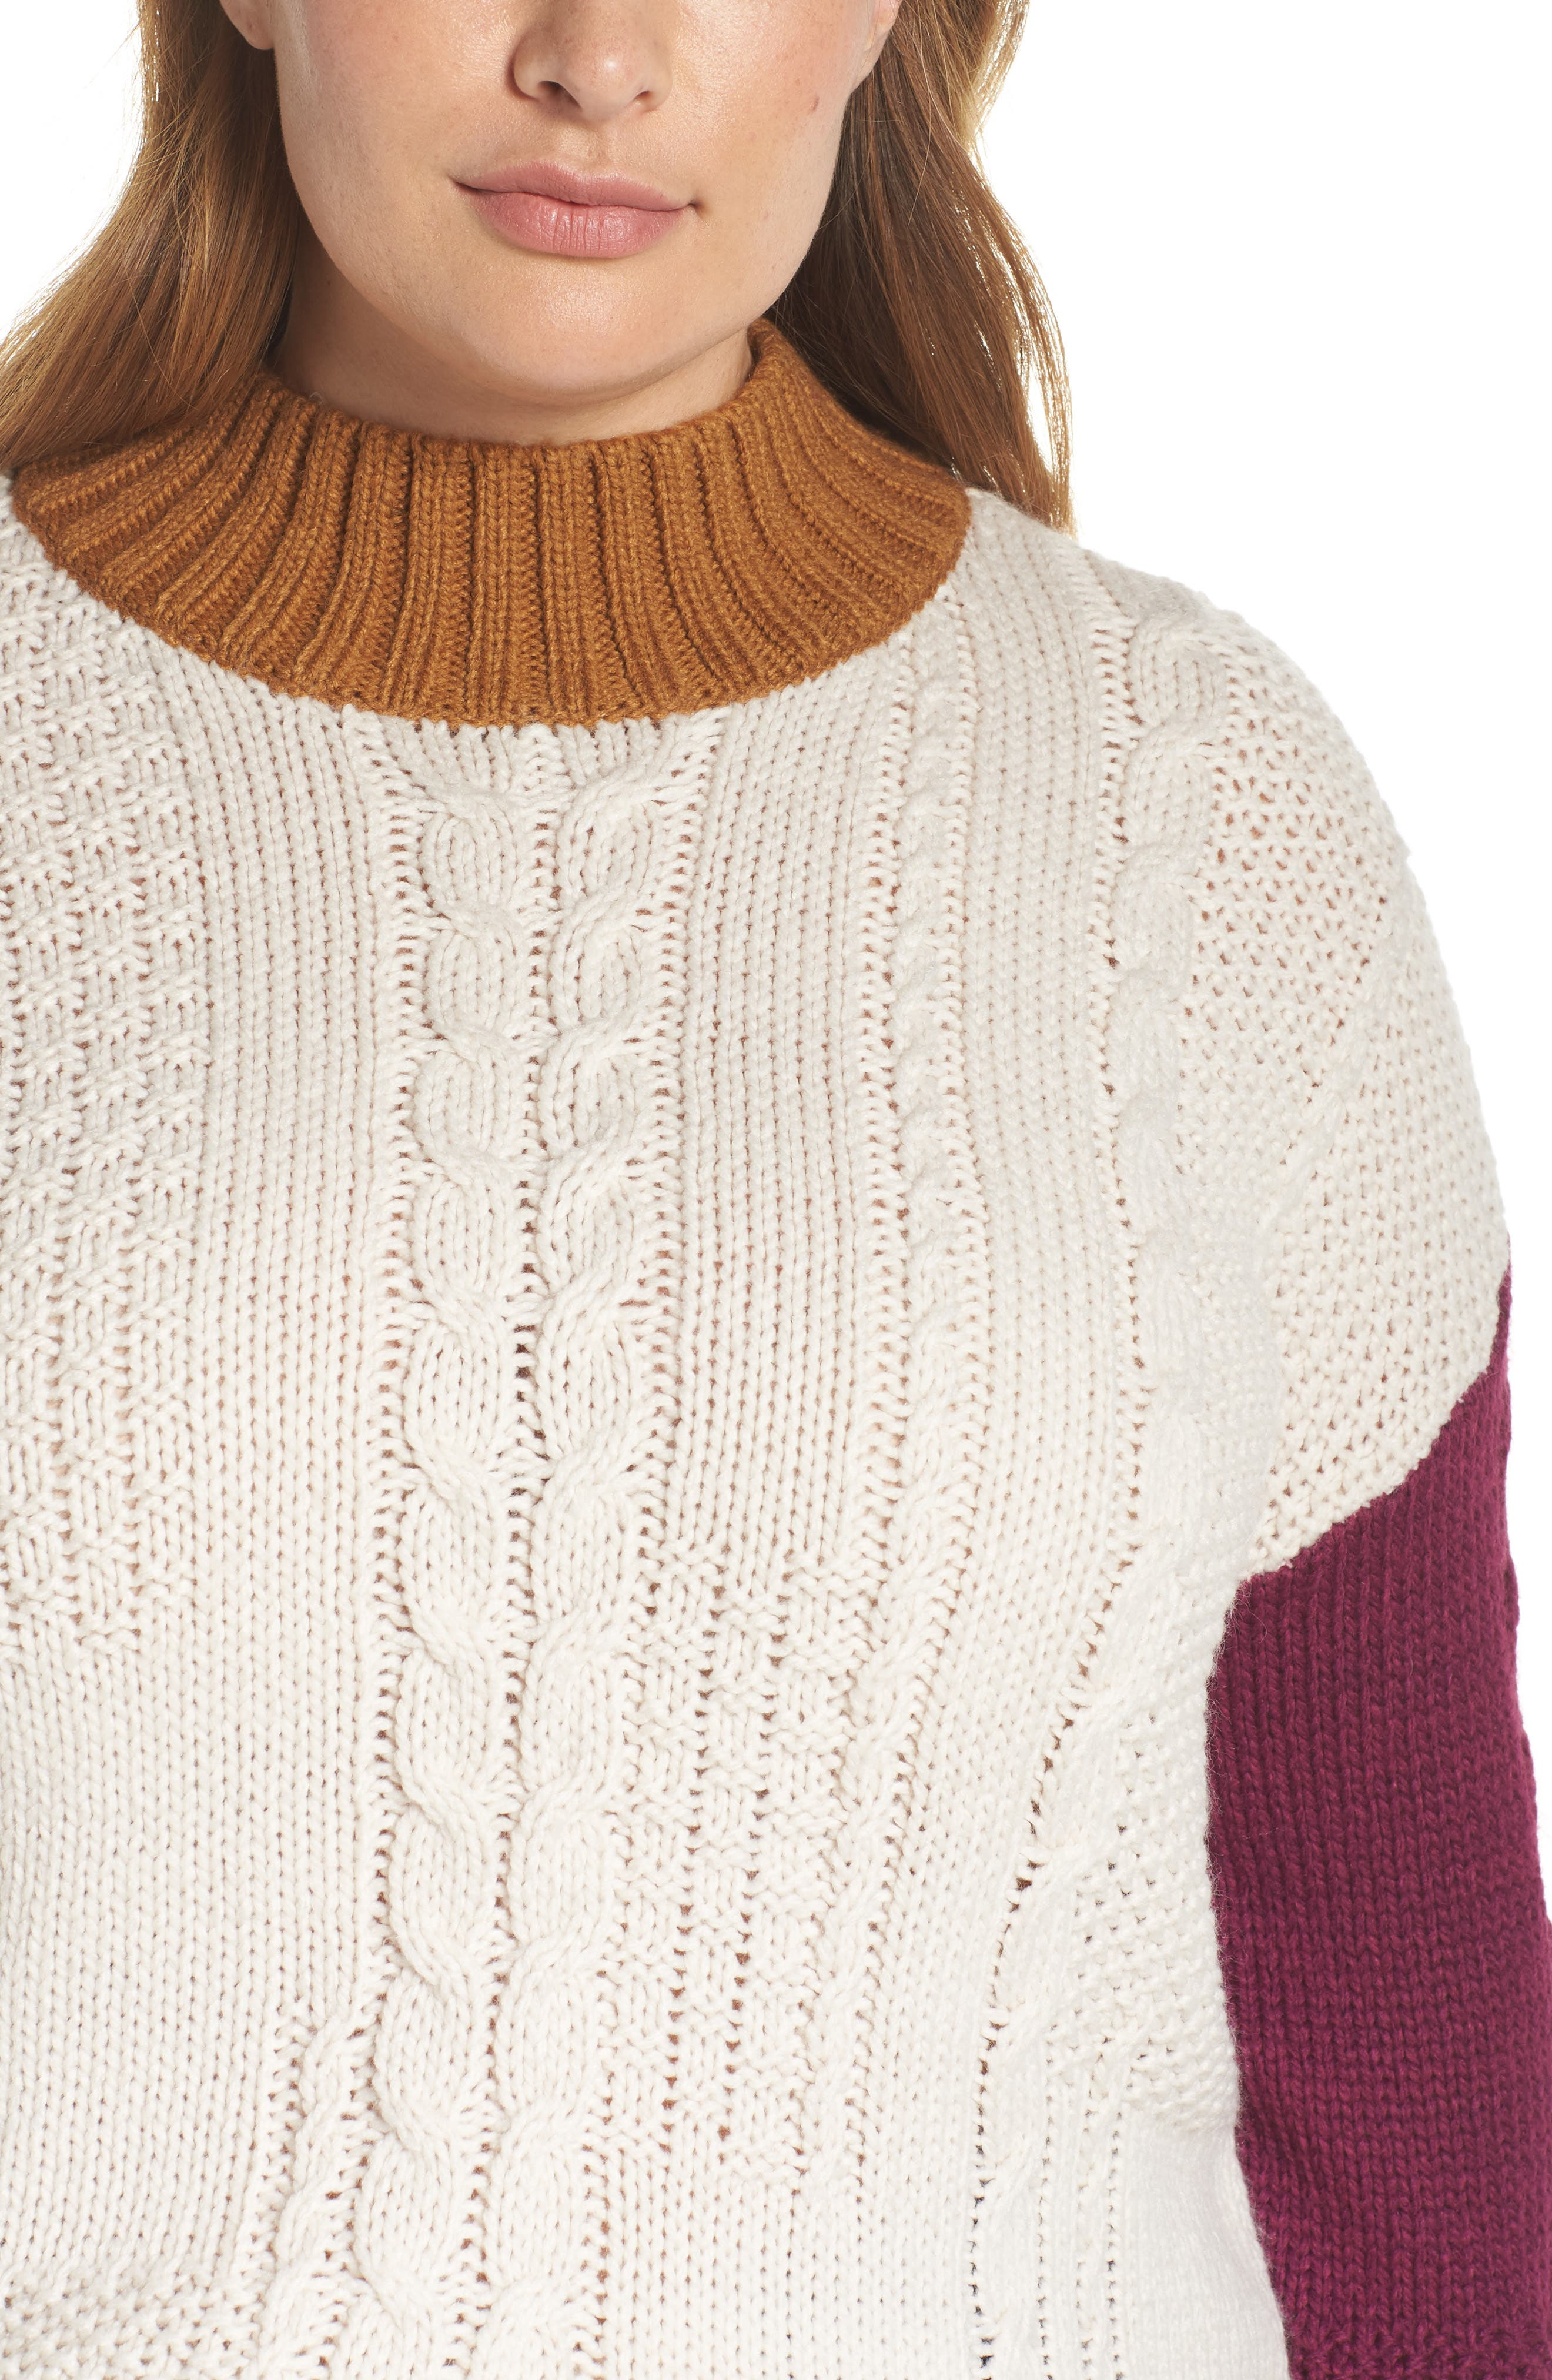 Colorblock Cable Knit Pullover,                             Alternate thumbnail 10, color,                             270